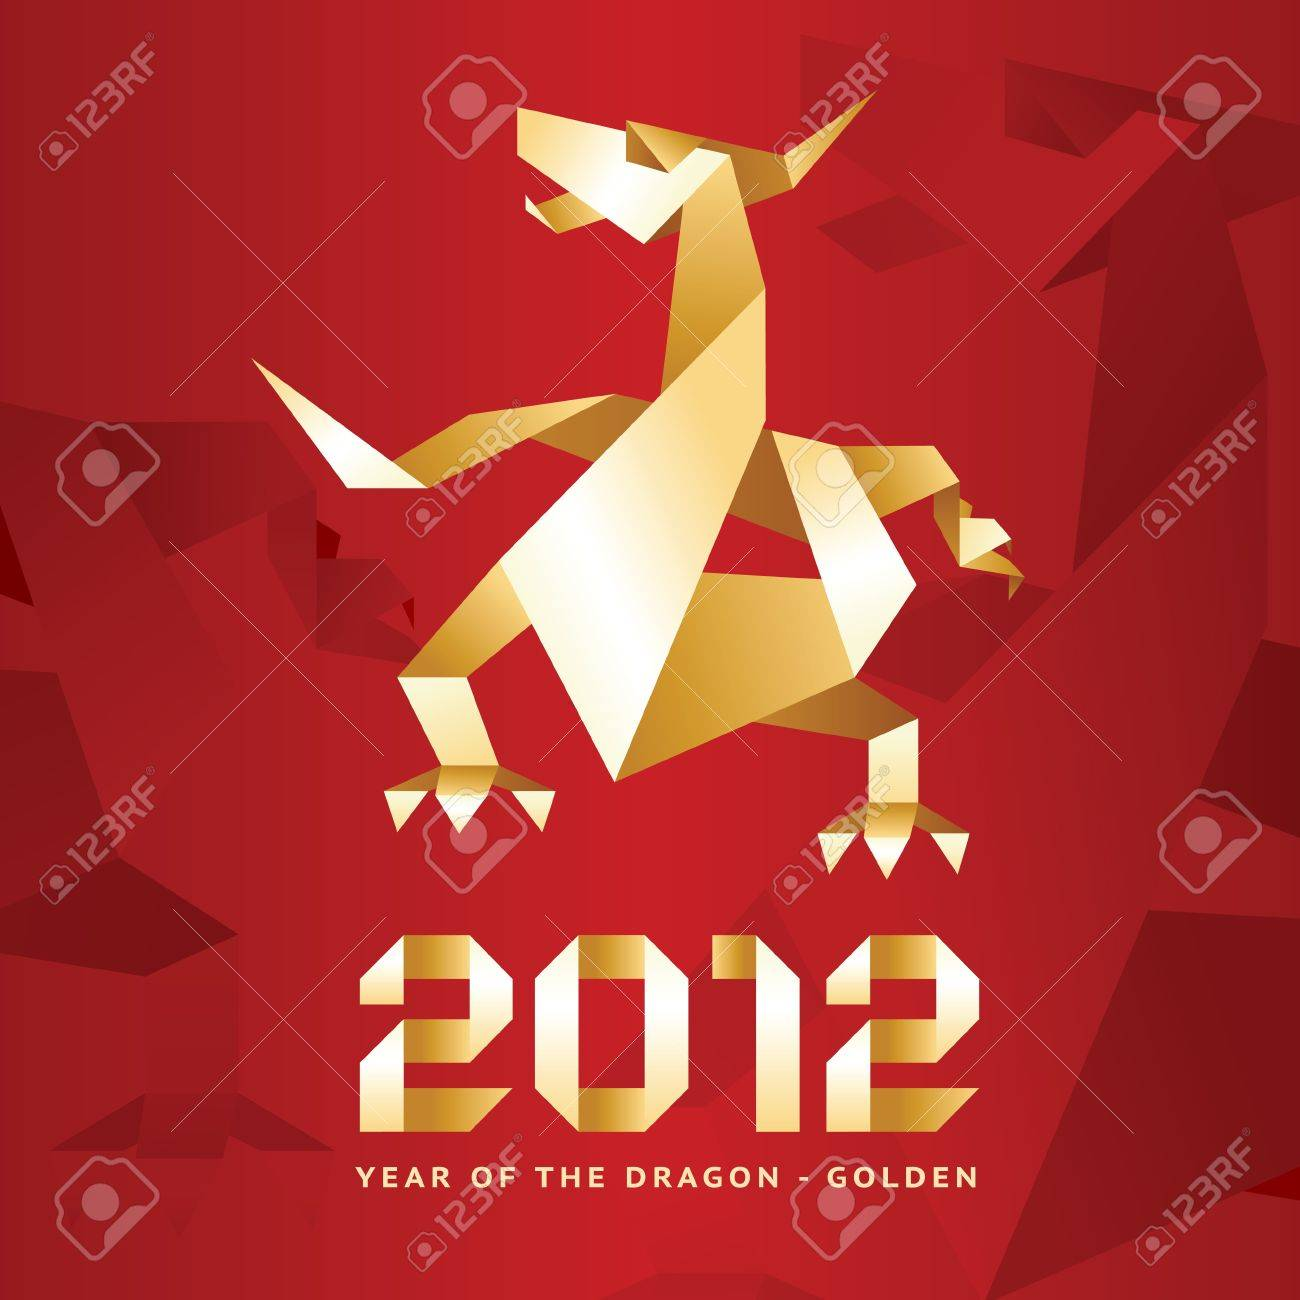 Origami Dragon, 2012 Year - Red Stock Vector - 10673820